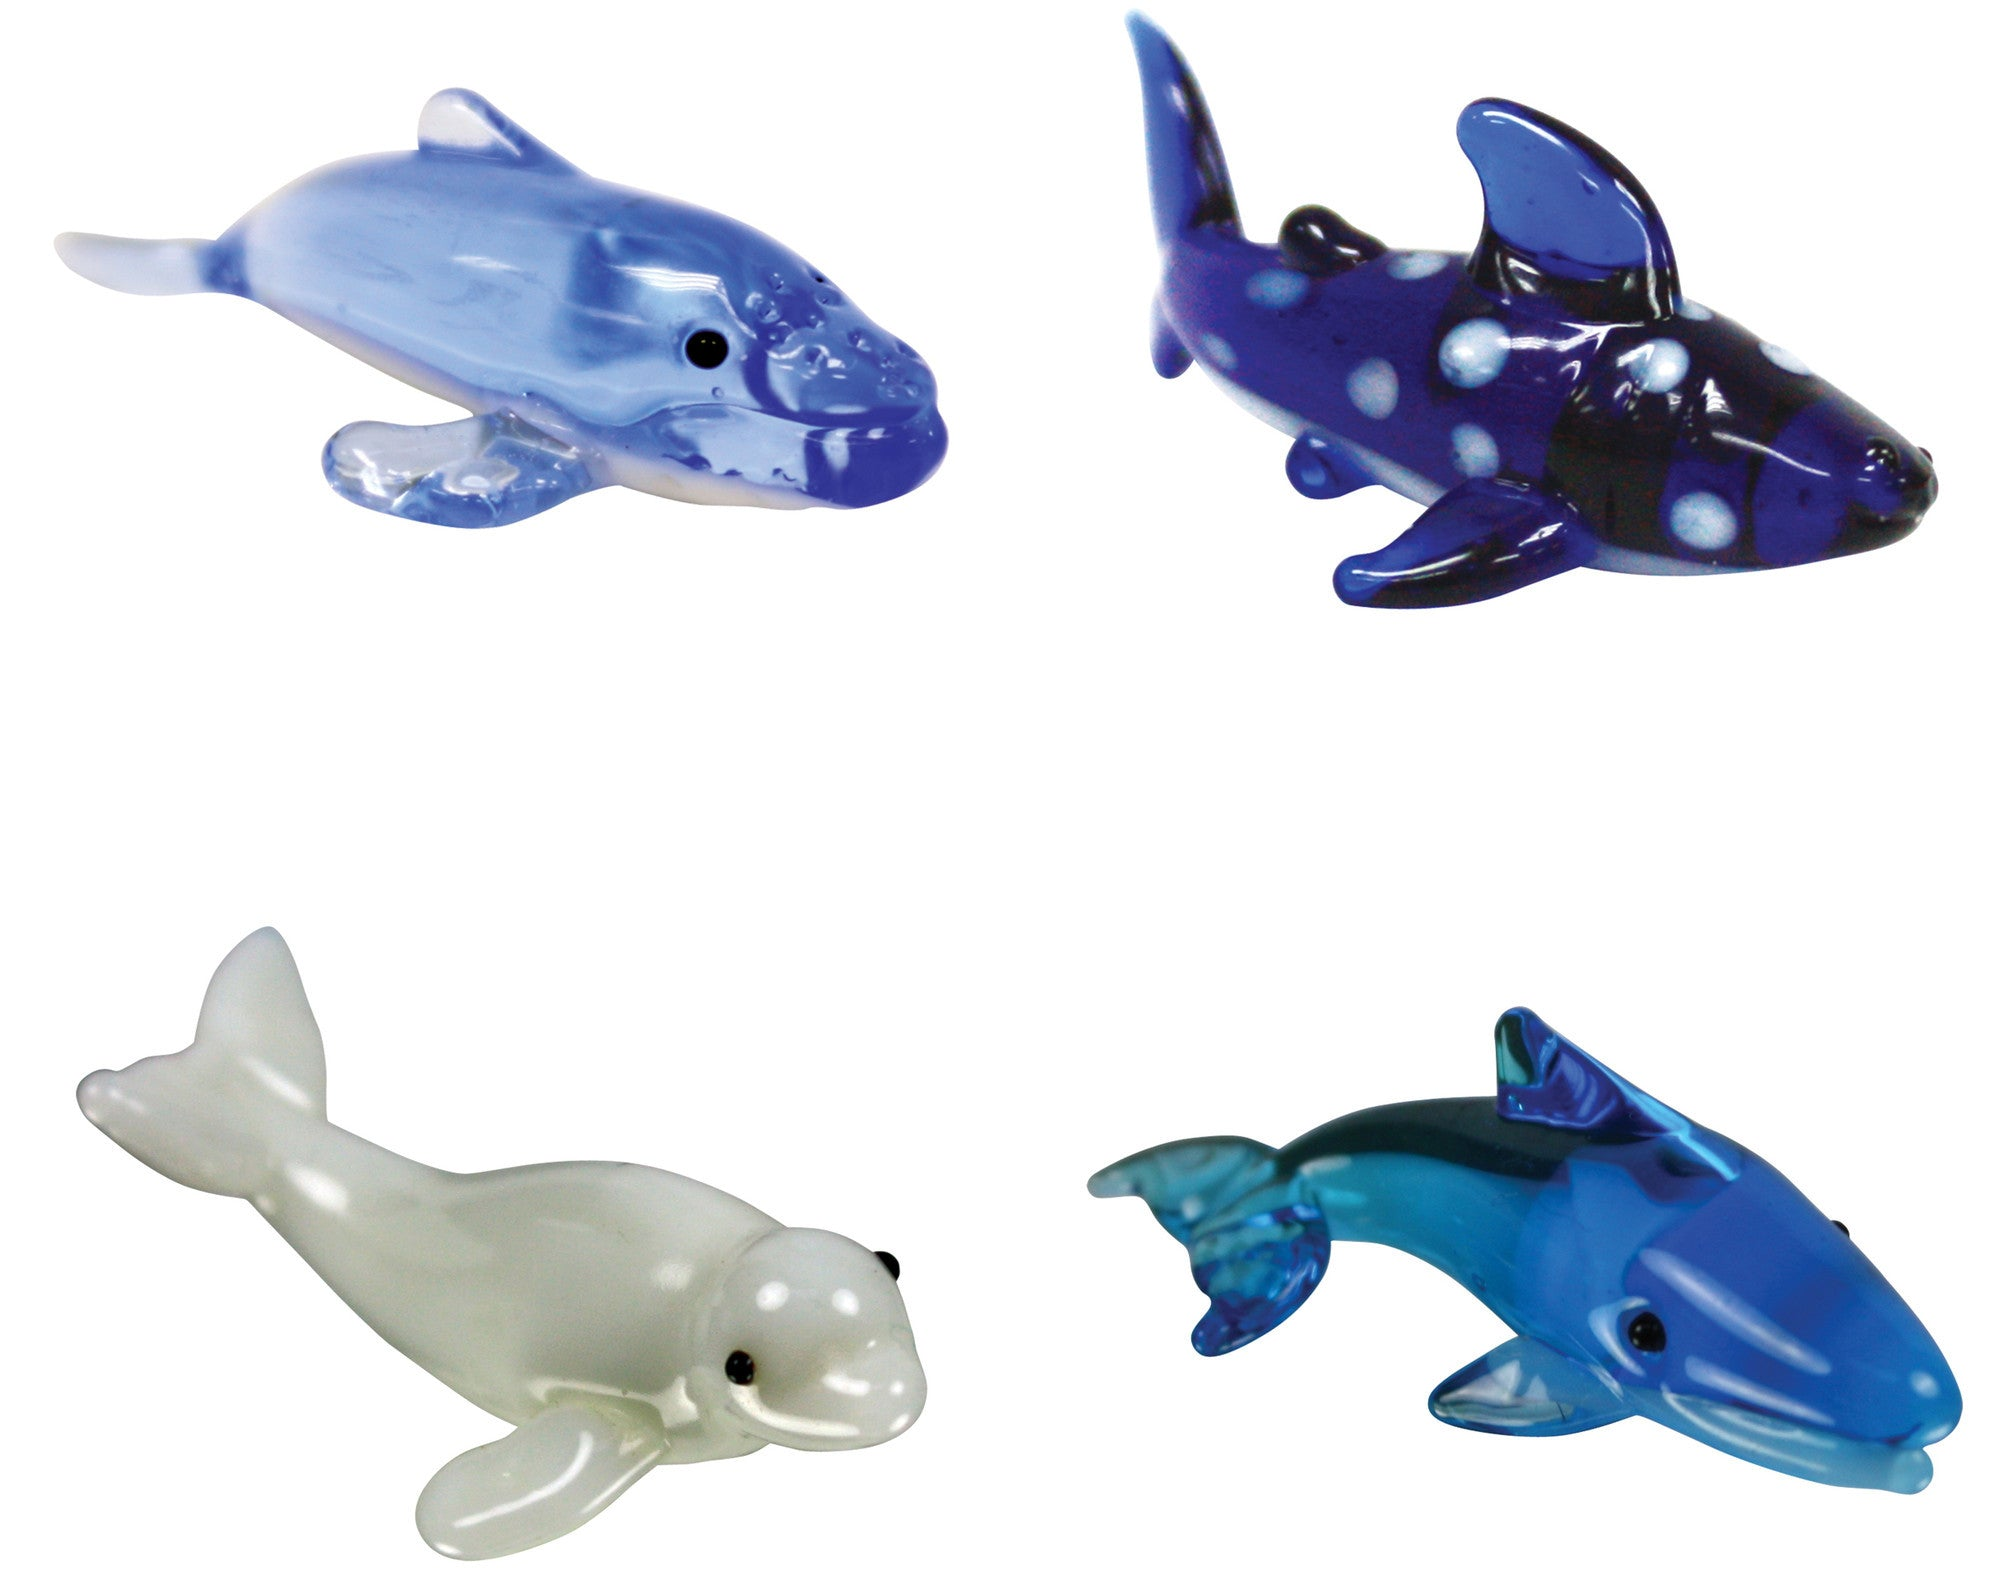 Looking Glass Torch - Ocean Figurines - 3 Different Whales & a Whale Shark(4-Pack) - Off The Wall Toys and Gifts